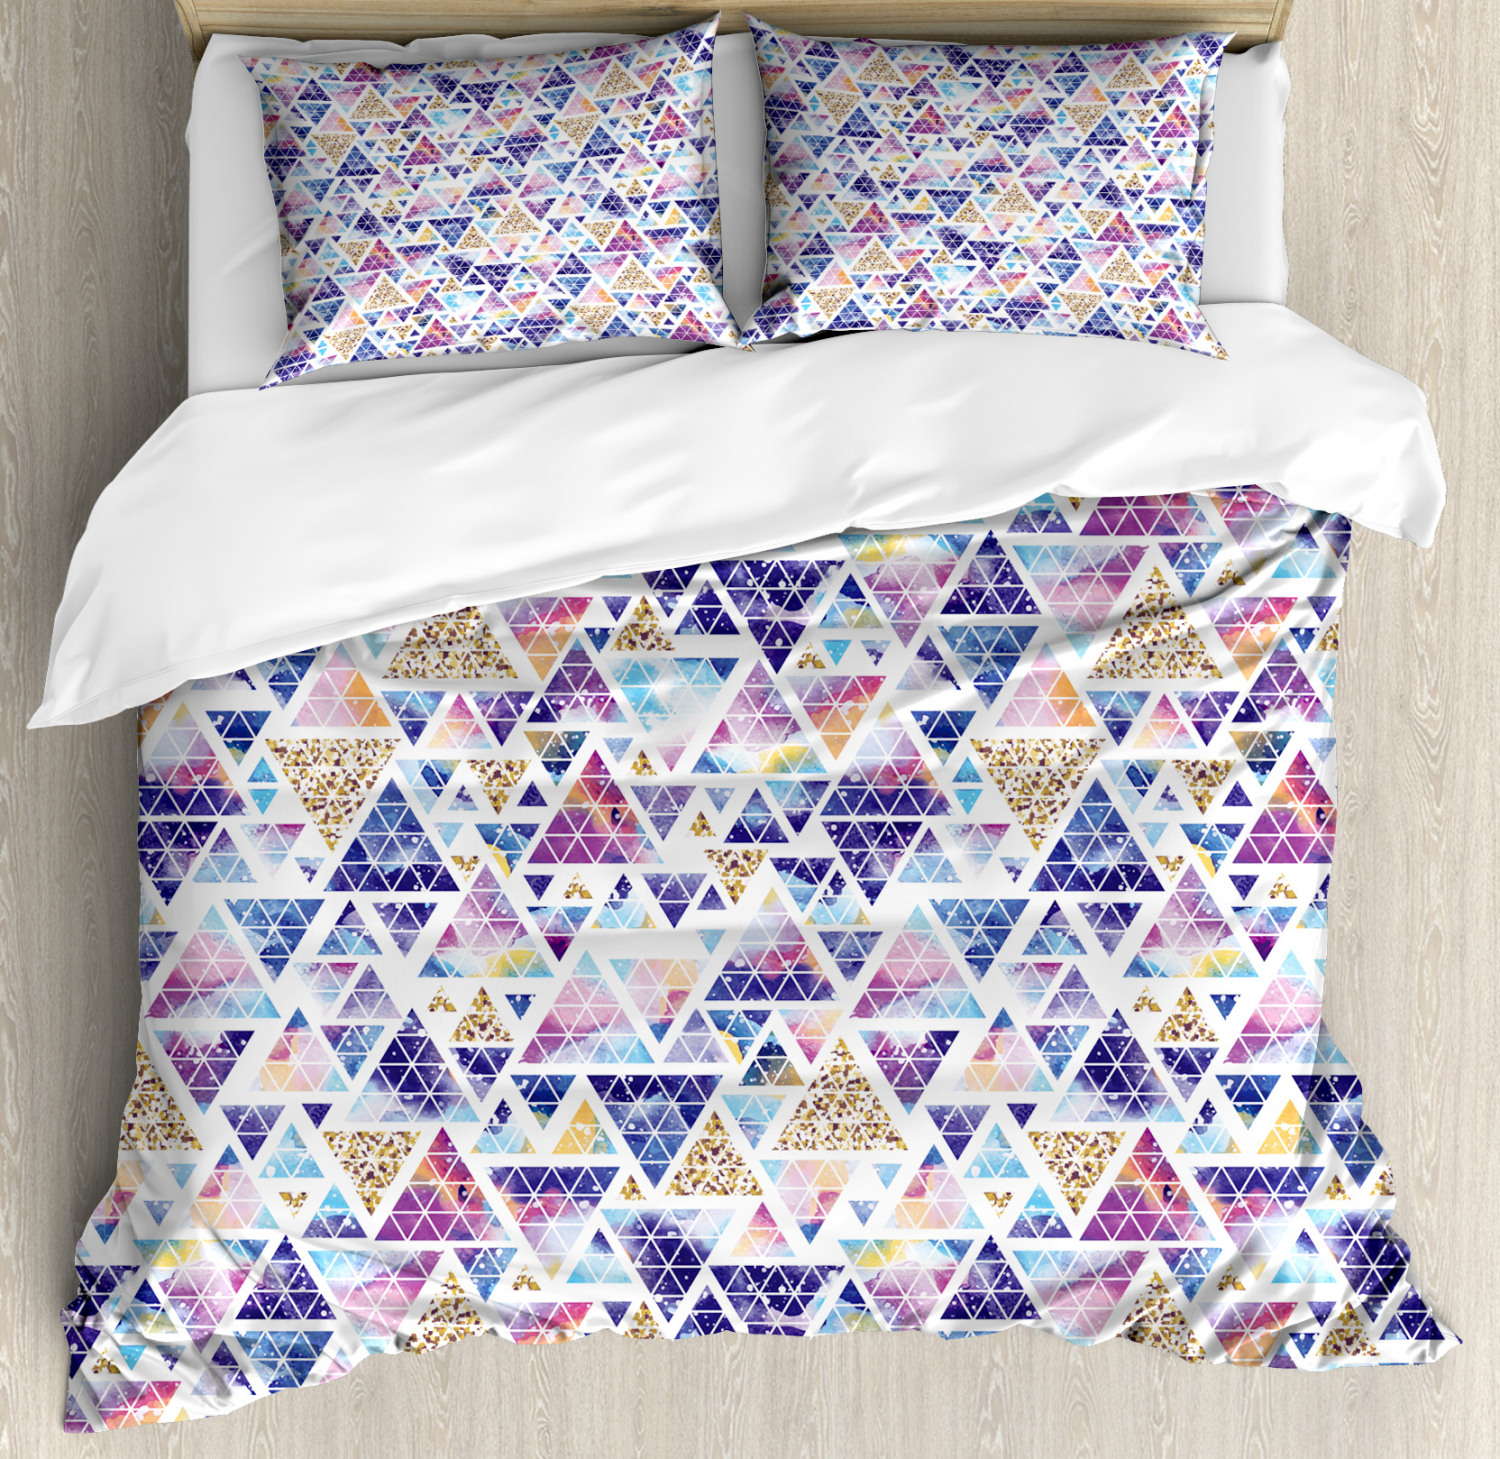 Geometric Duvet Cover Set with Pillow Shams Triangular Space Art Print